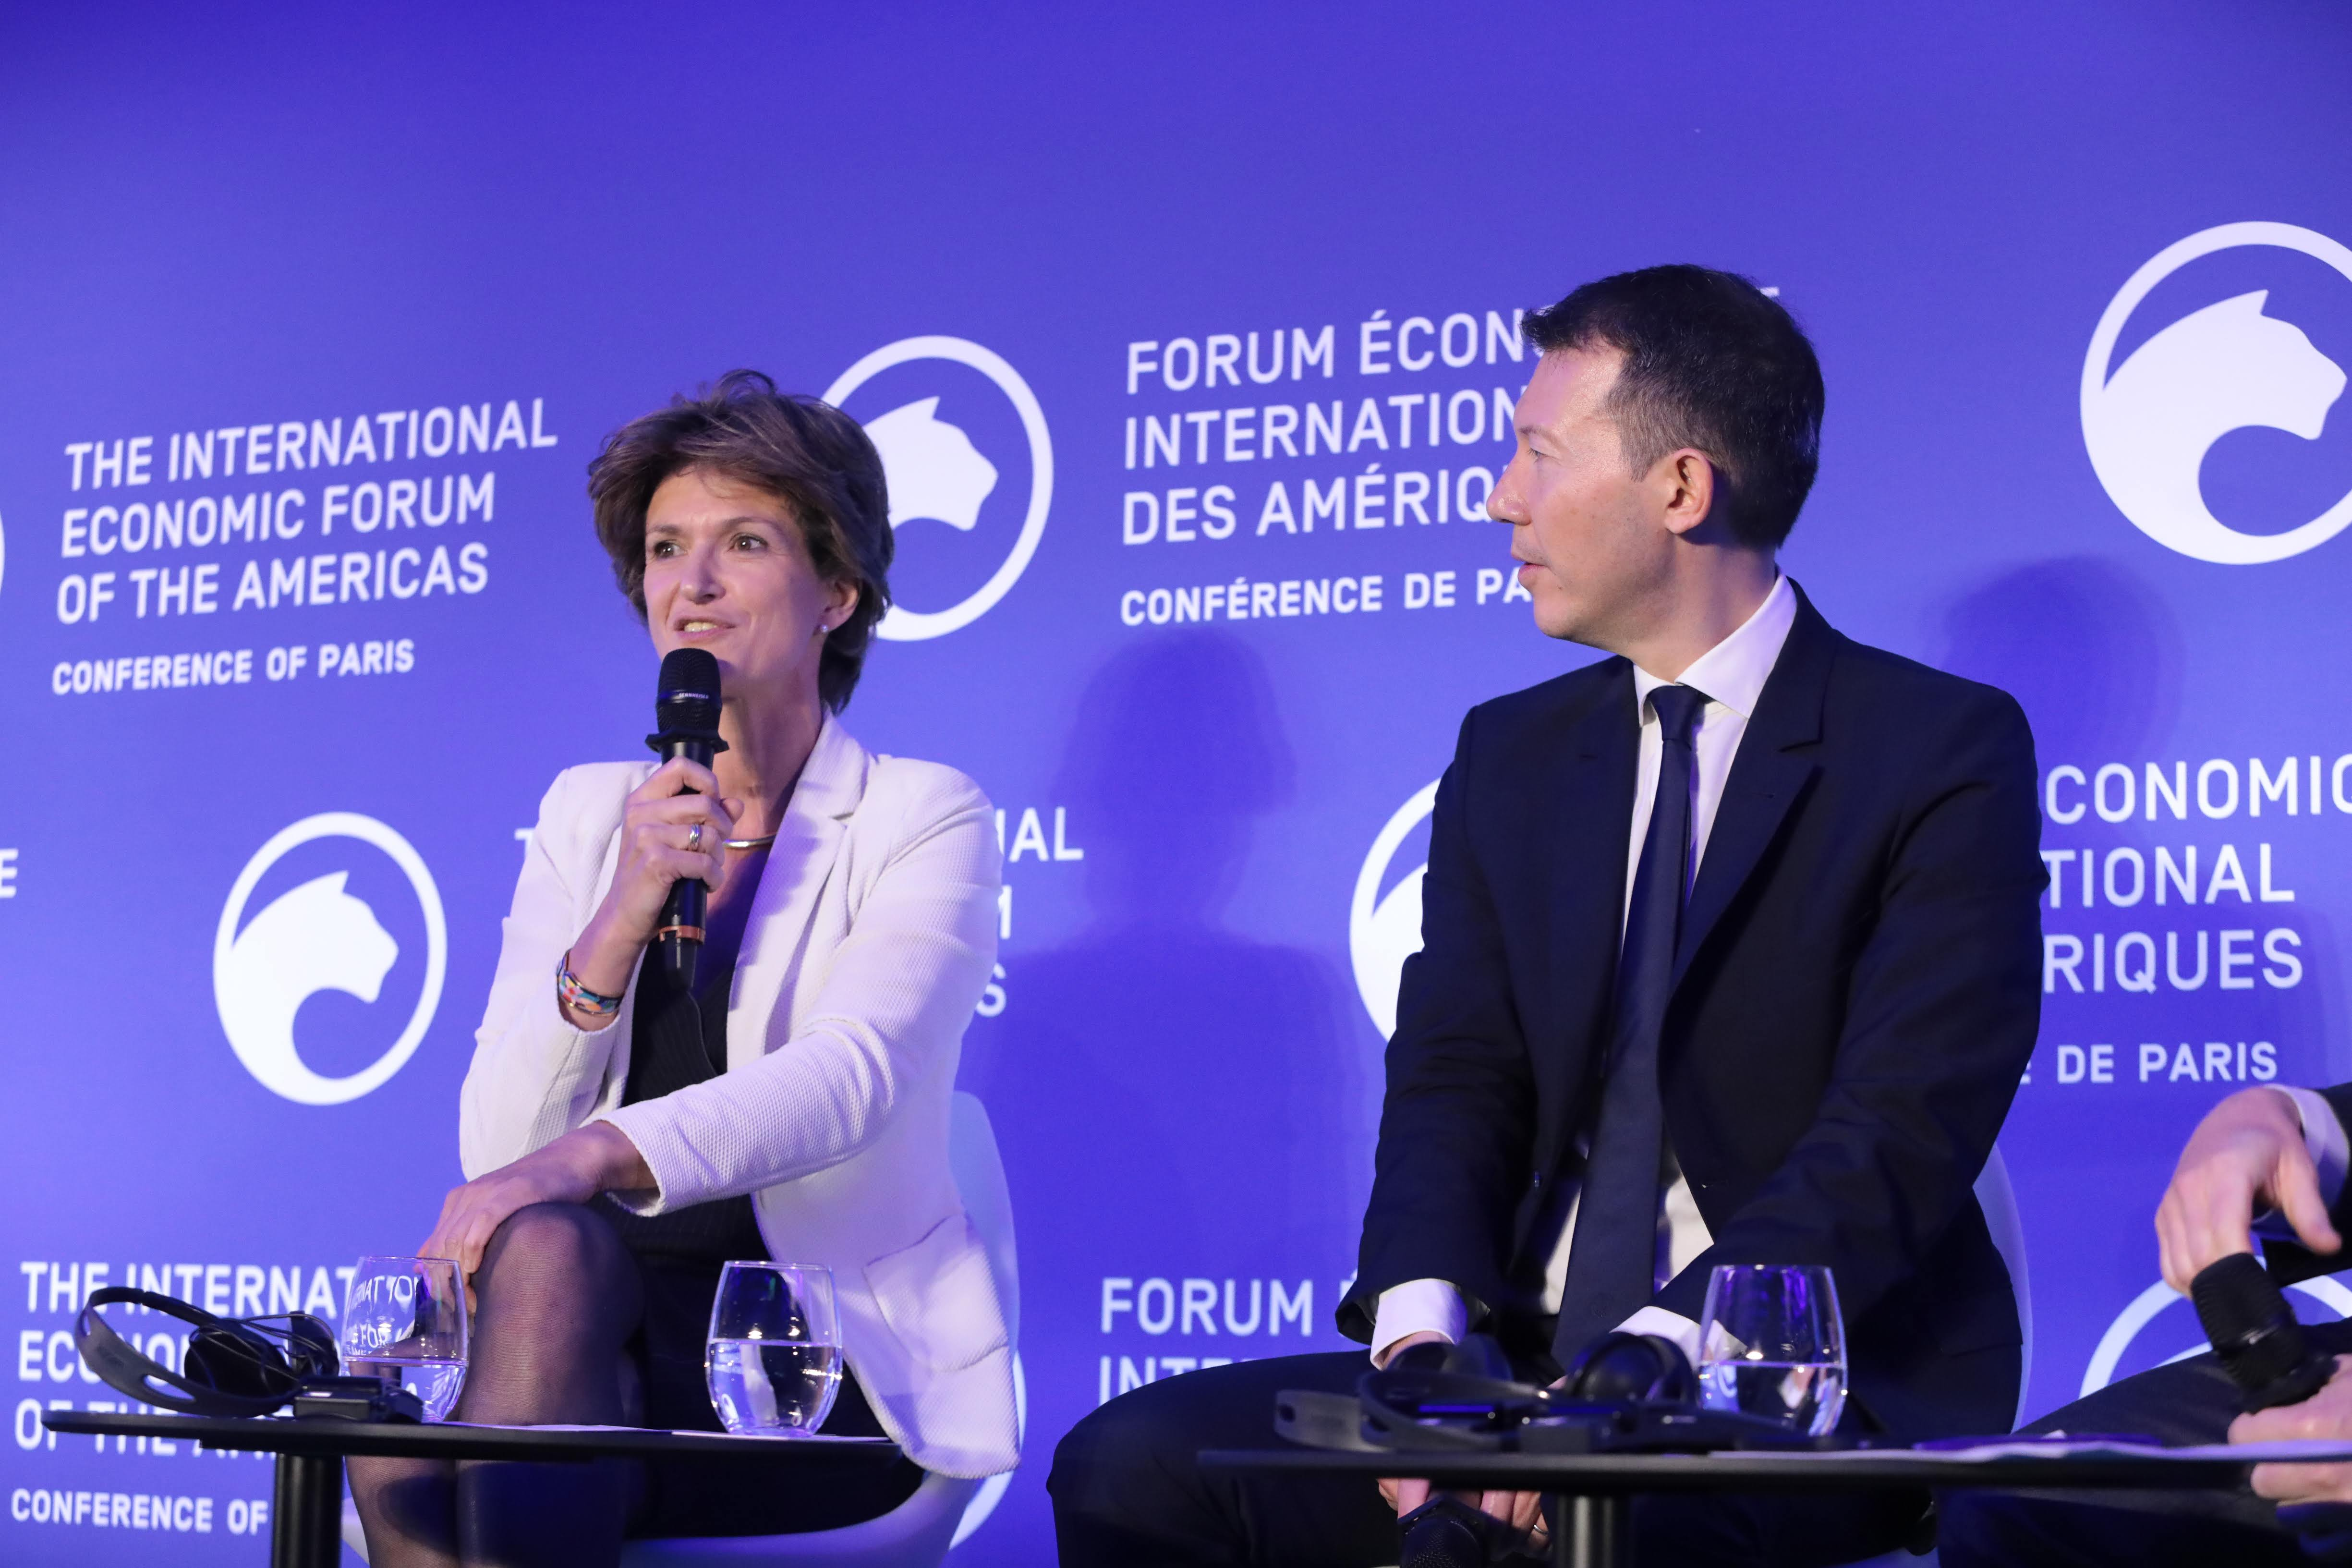 Isabelle Kocher, Chief Executive Officer, ENGIE and Ben Smith, Chief Executive Officer, Air France-KLM - Conference of Paris 2019